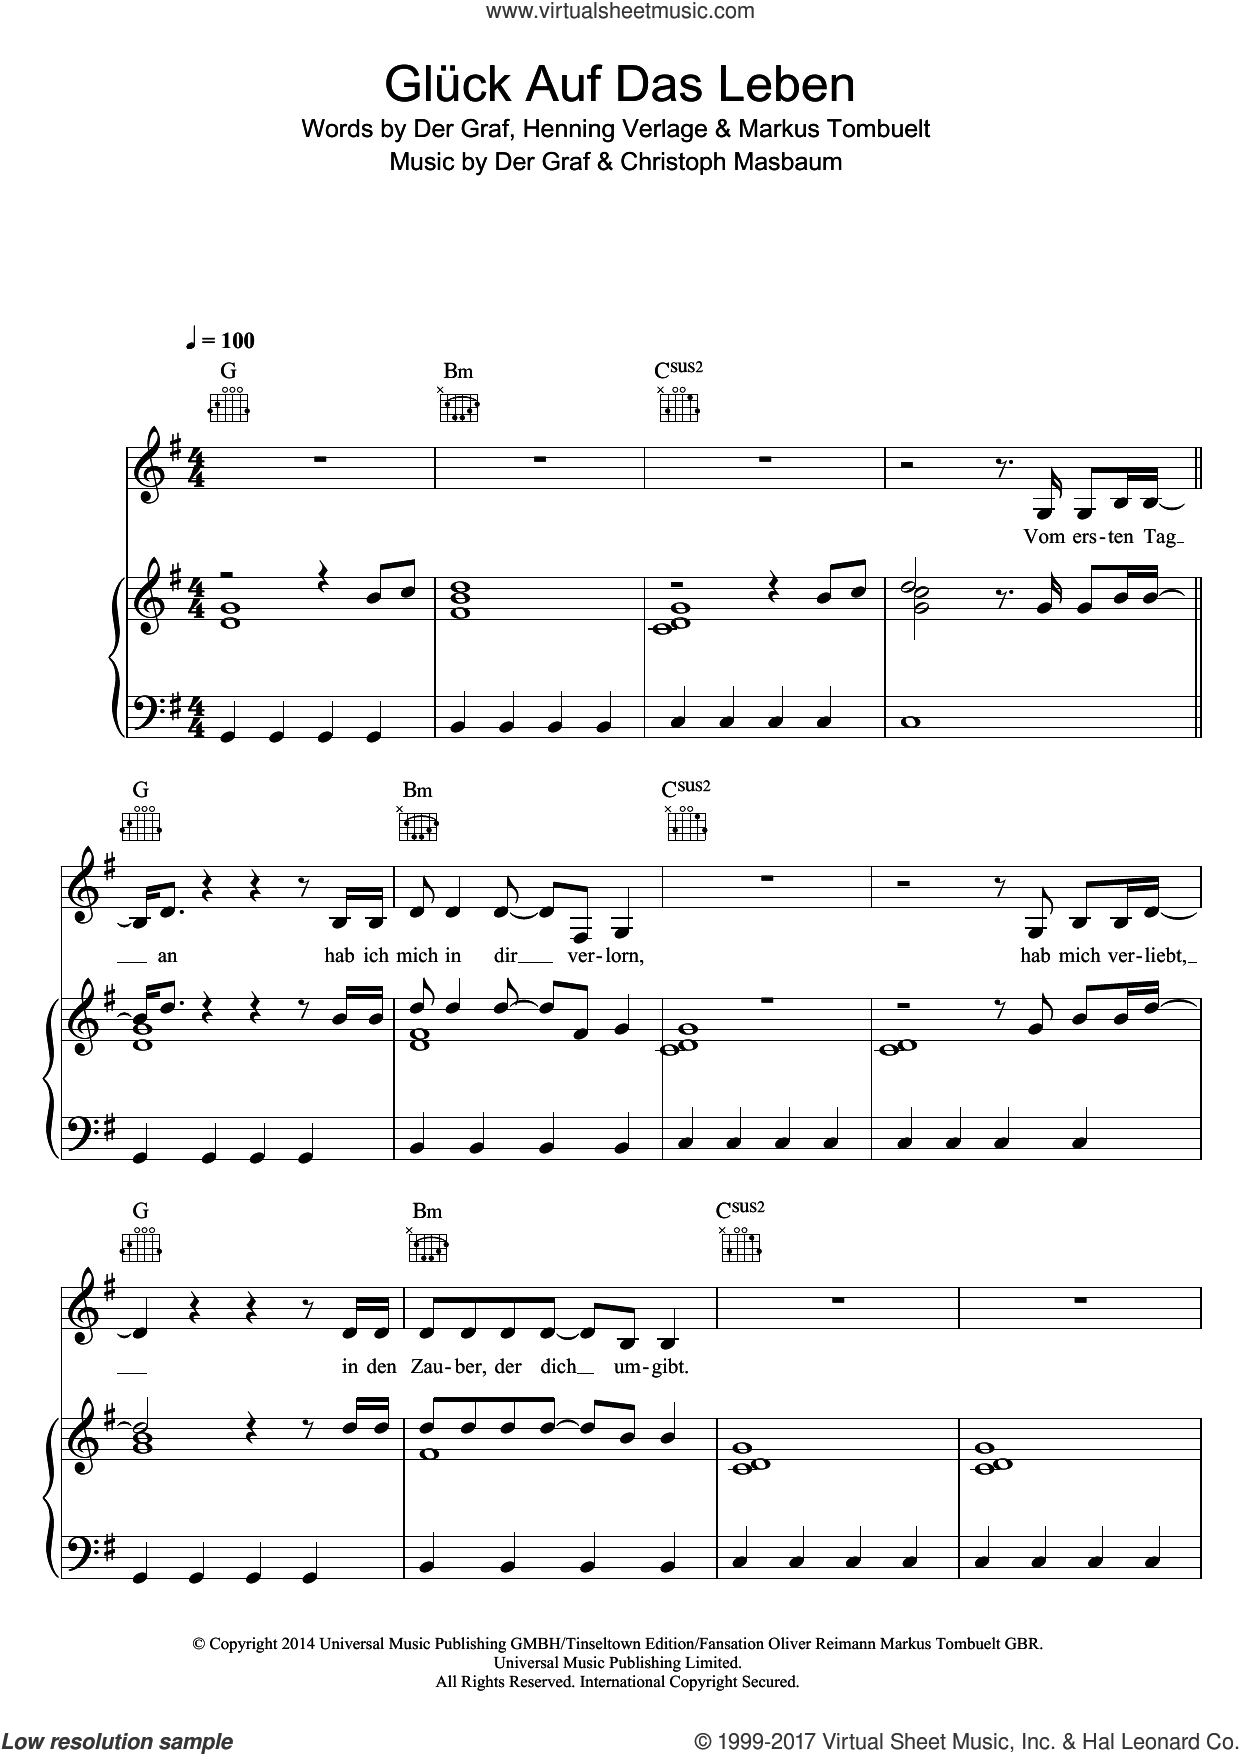 Gluck Auf Das Leben sheet music for voice, piano or guitar by Unheilig. Score Image Preview.